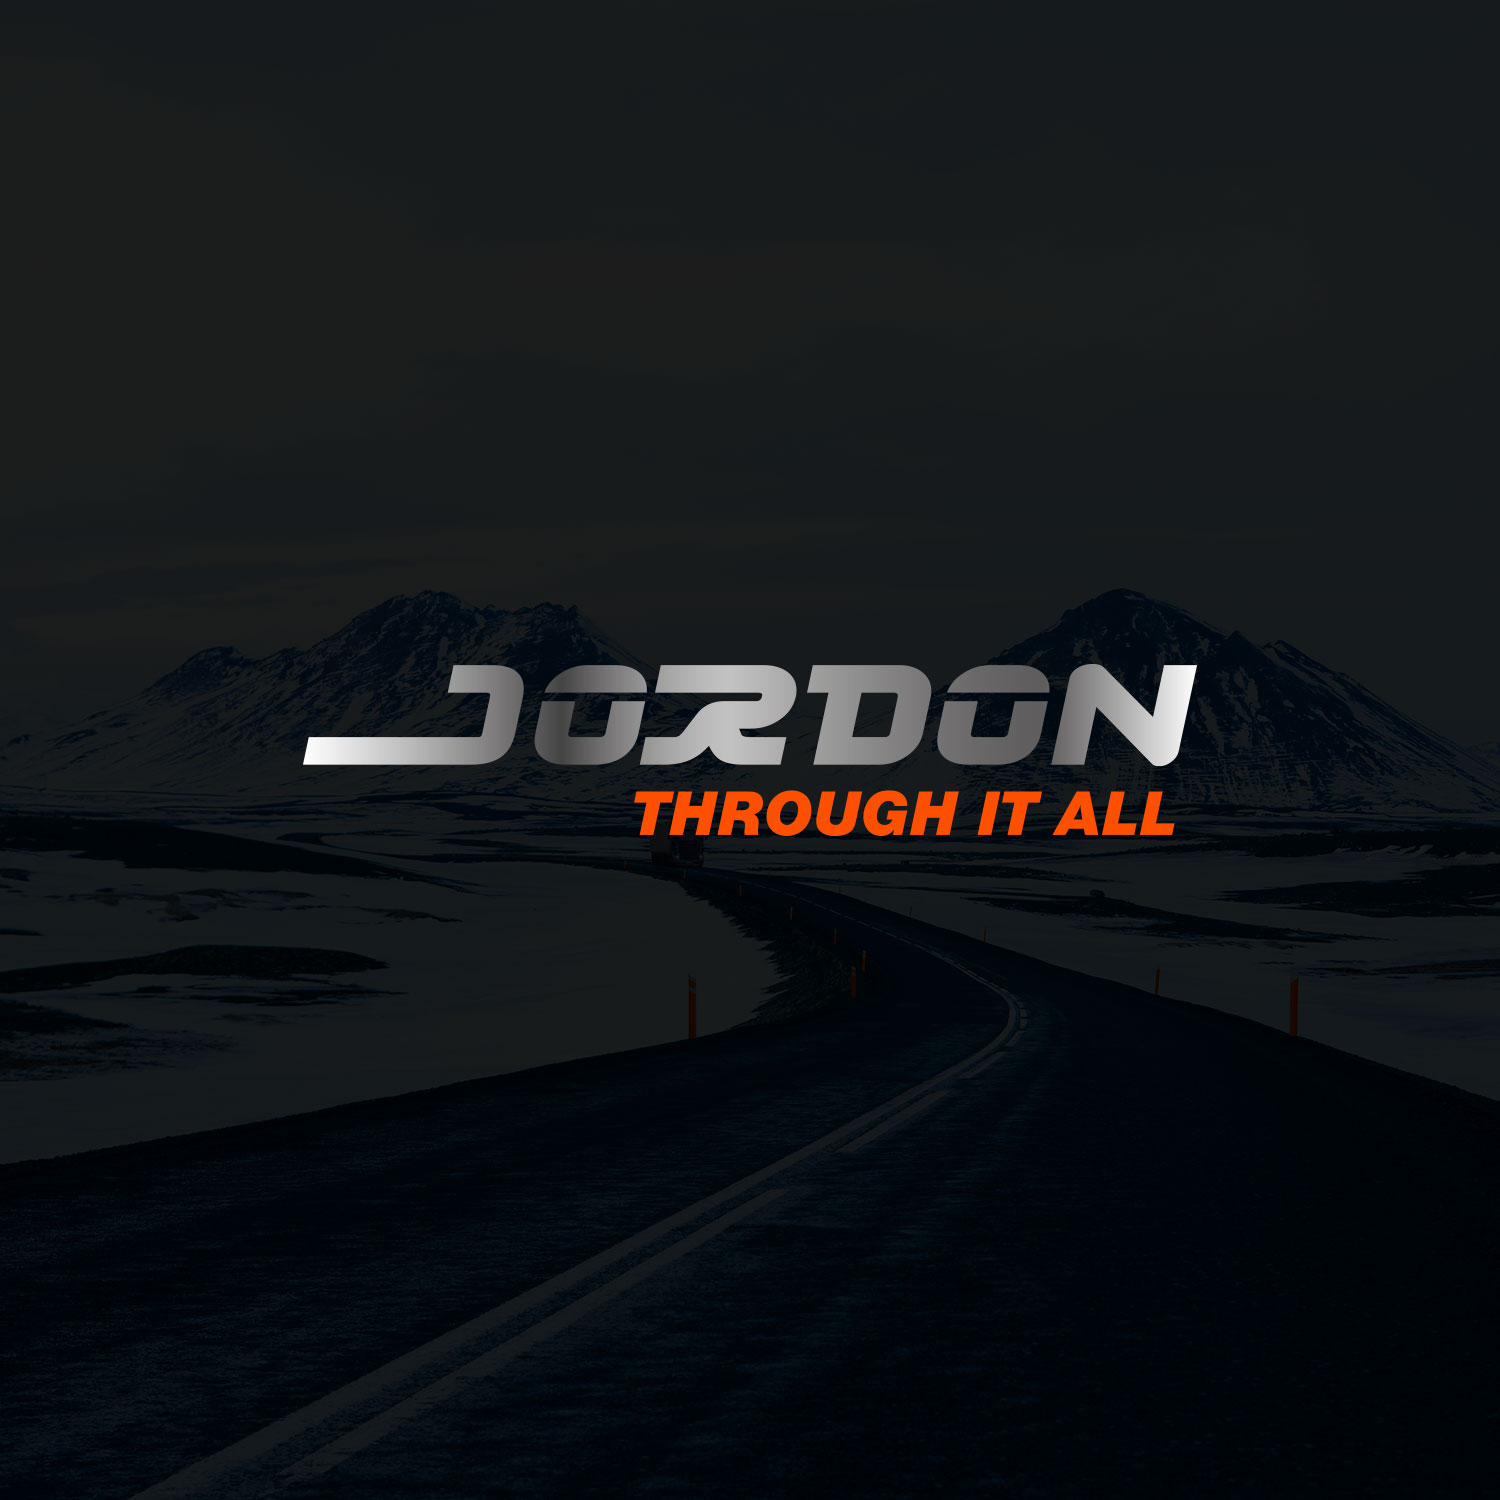 Jordon logo chrome